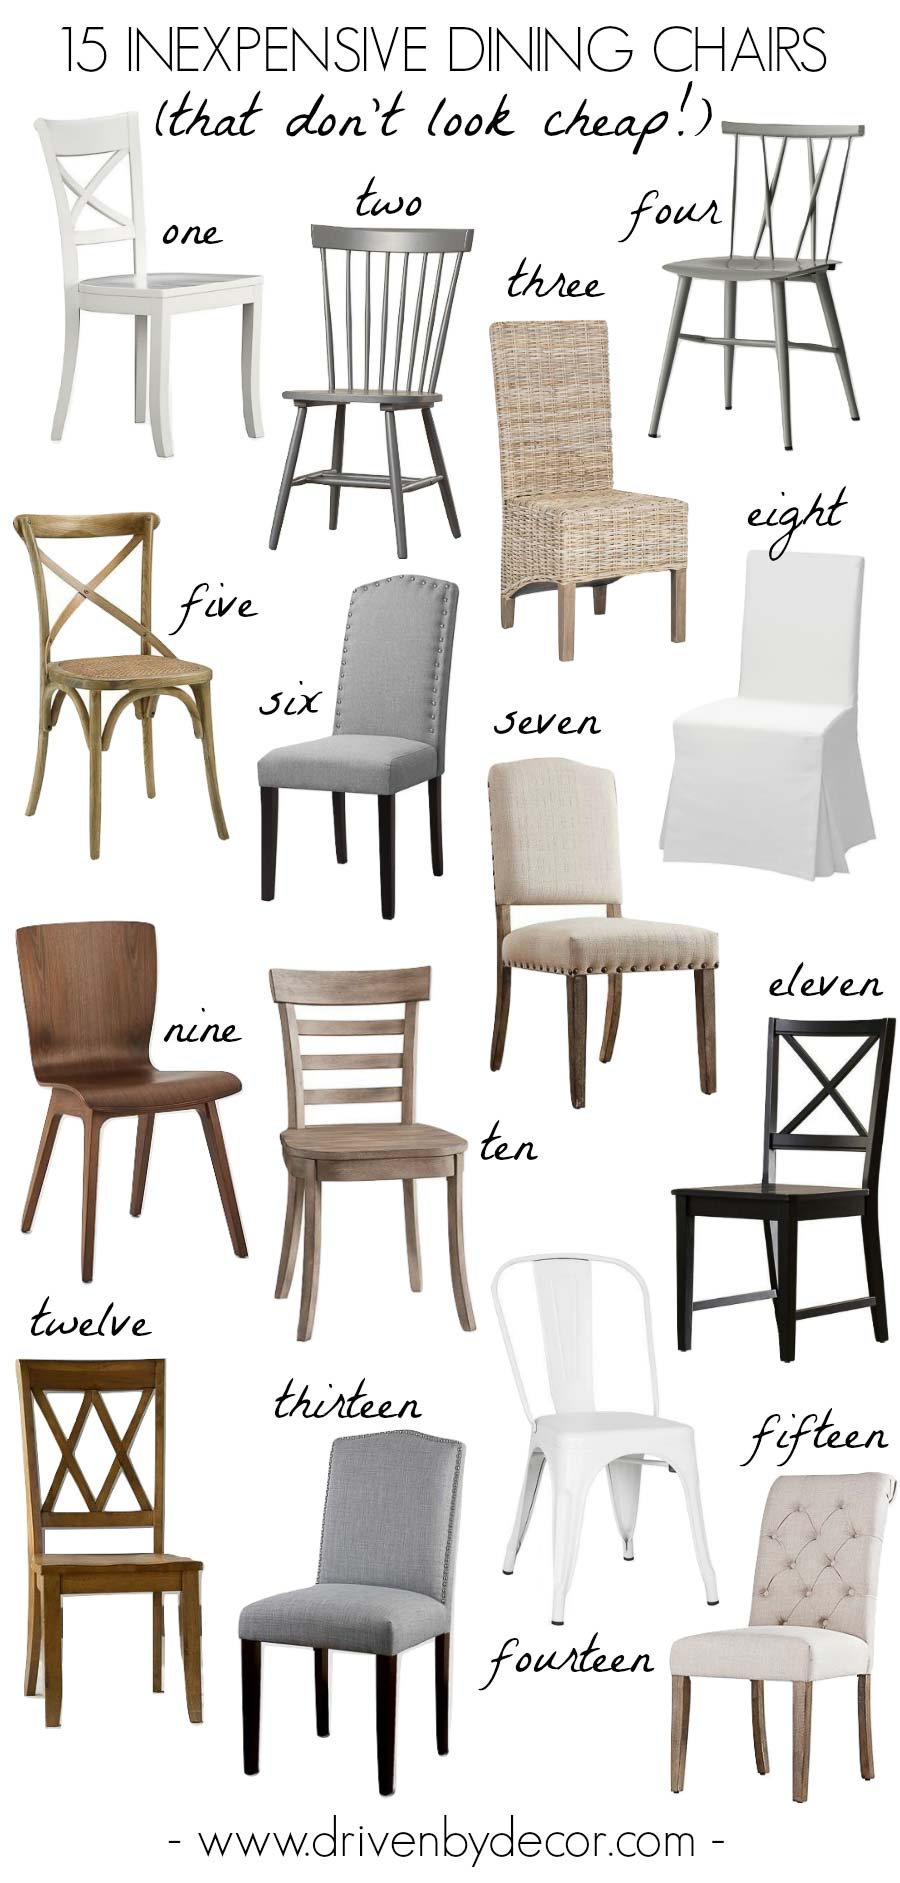 Awesome 15 Inexpensive Dining Chairs That Dont Look Cheap Andrewgaddart Wooden Chair Designs For Living Room Andrewgaddartcom